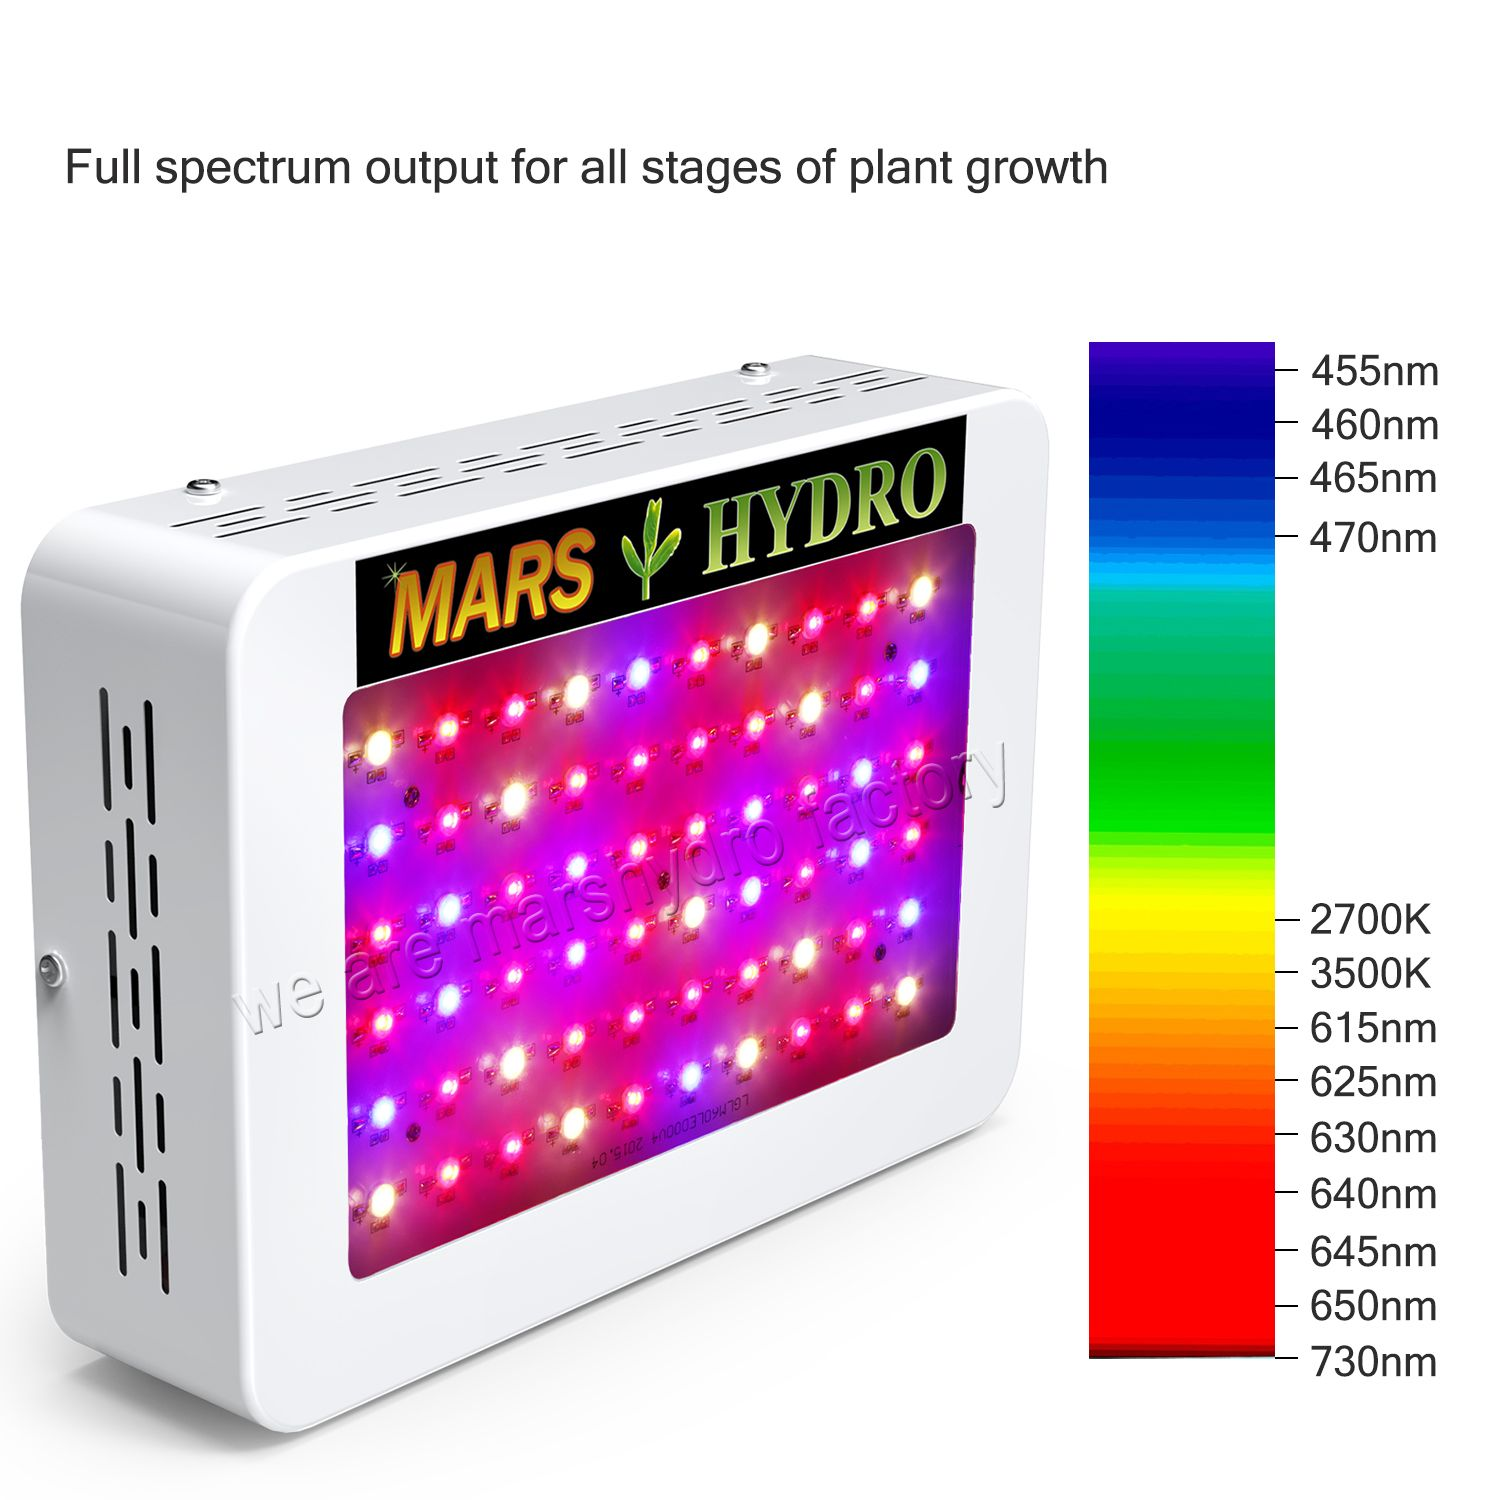 Mars Hydro Ts 1000w Led Grow Light Set 2 X2 Tent Full Spectrum Ir For Veg Bloom Led Grow Lights Grow Lights Growing Plants Indoors